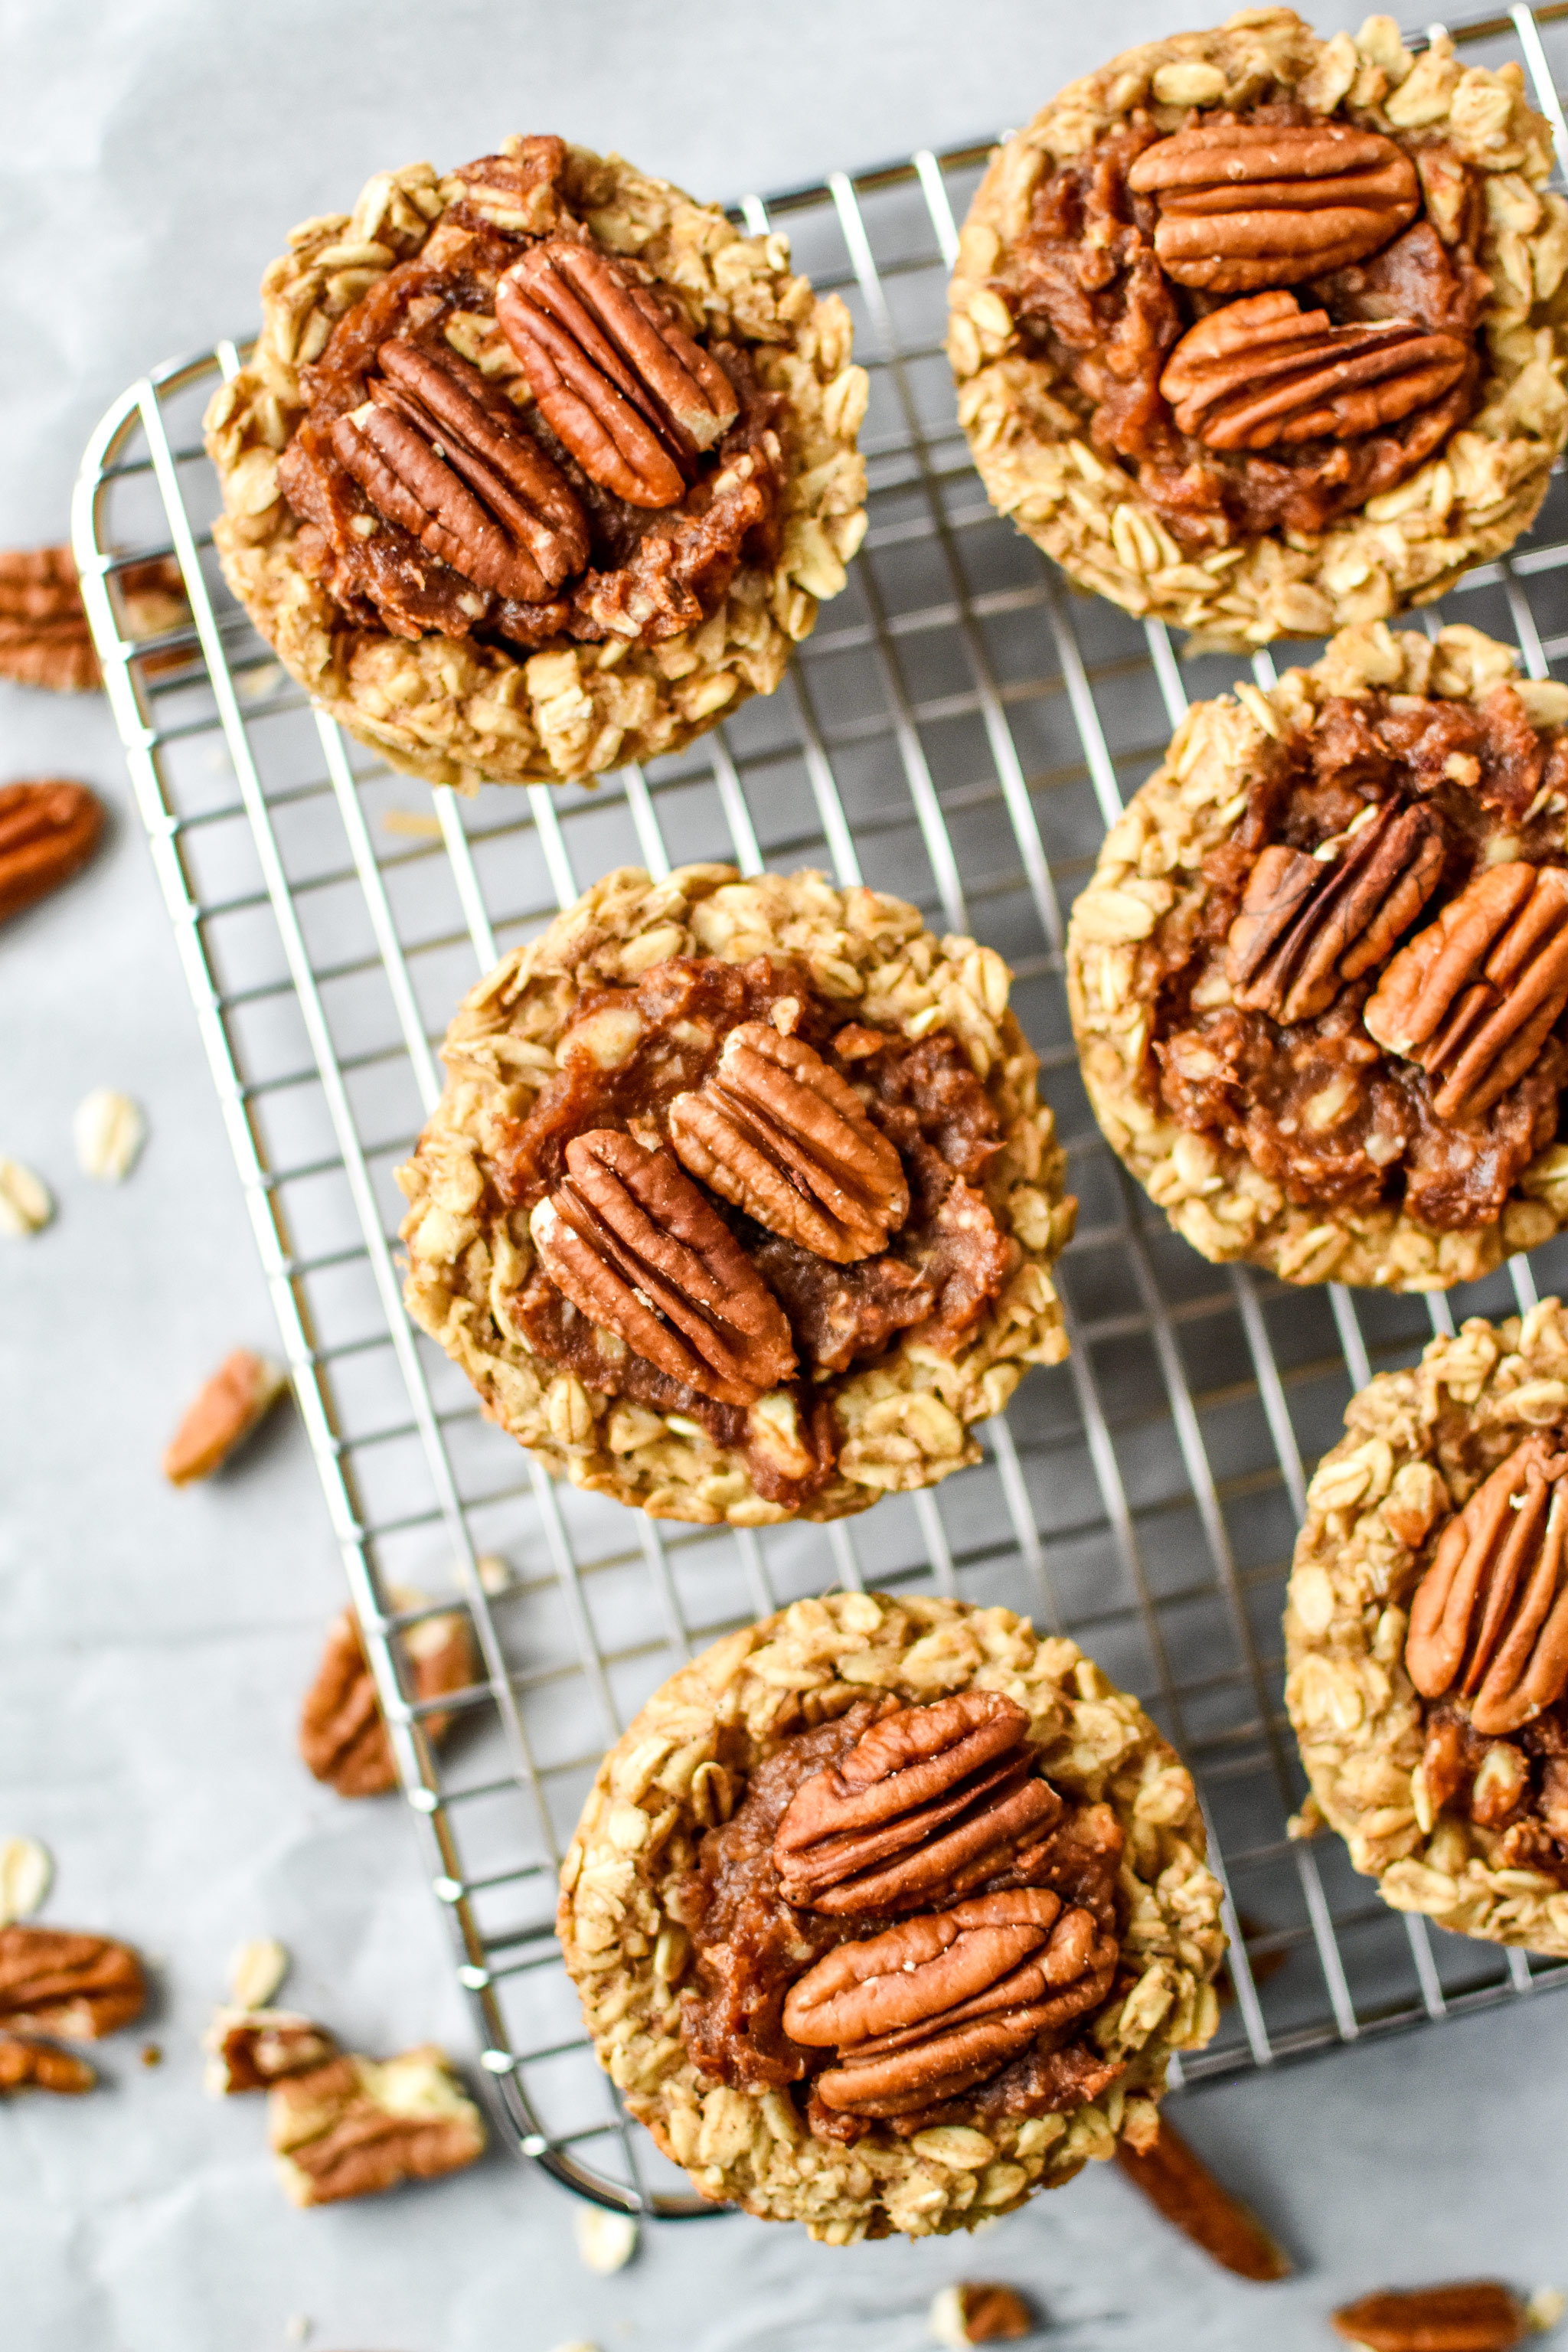 Pecan Pie Stuffed Oatmeal Breakfast Cups fresh from the oven